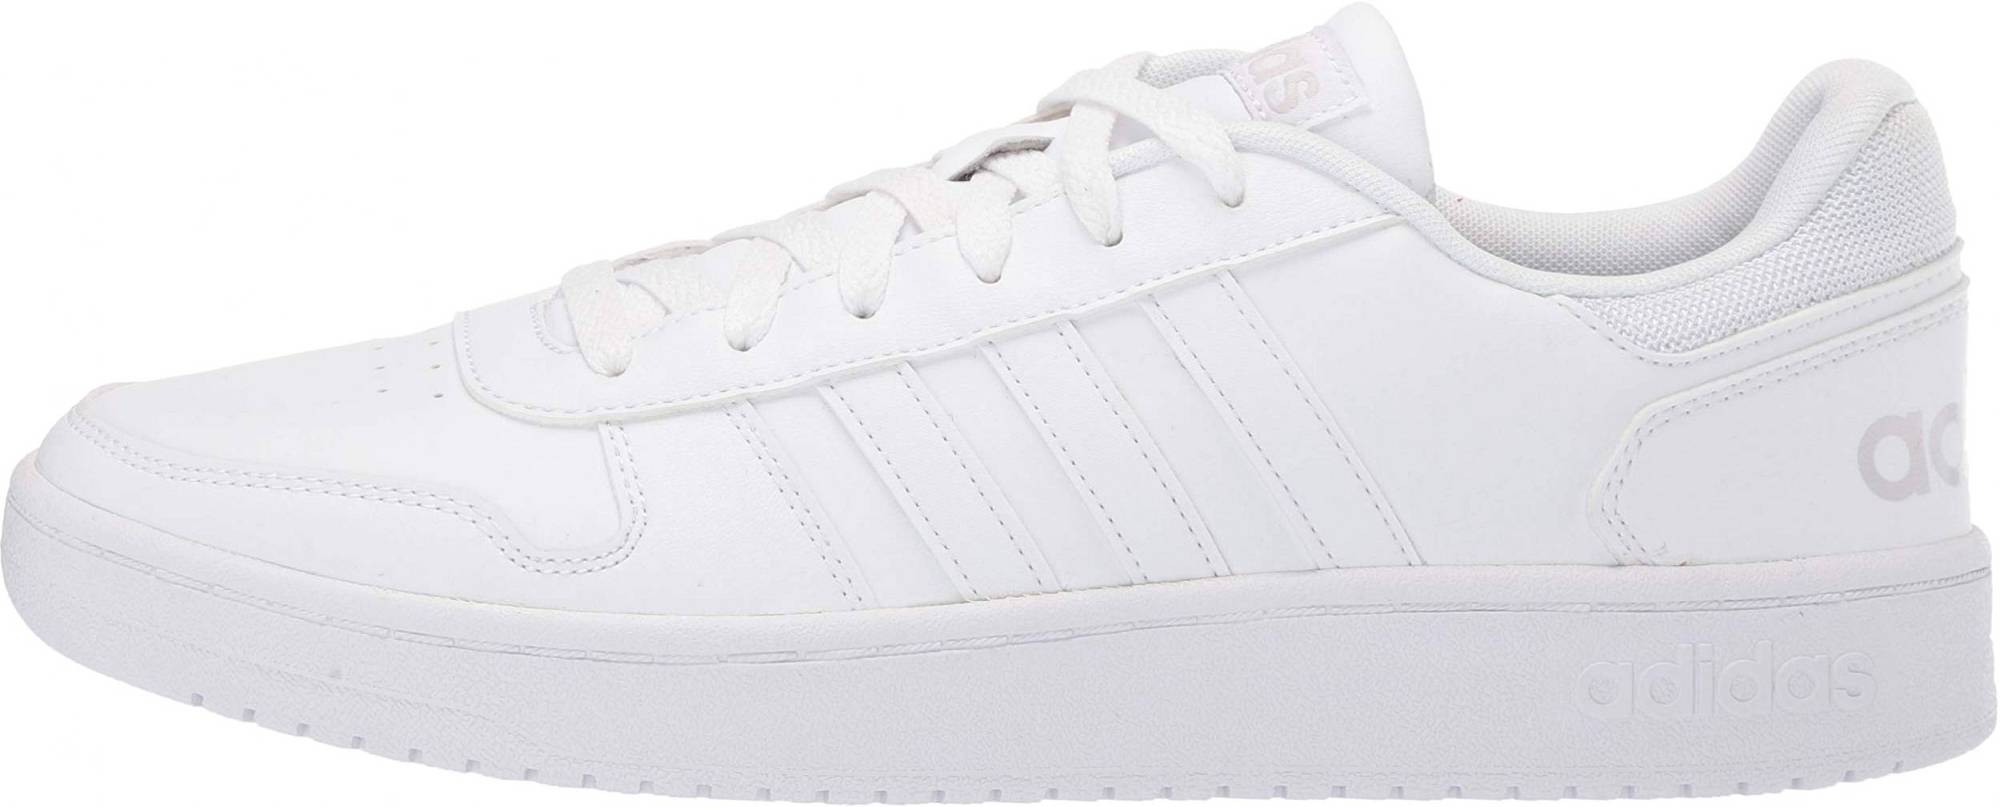 Adidas Hoops 2.0 – Shoes Reviews